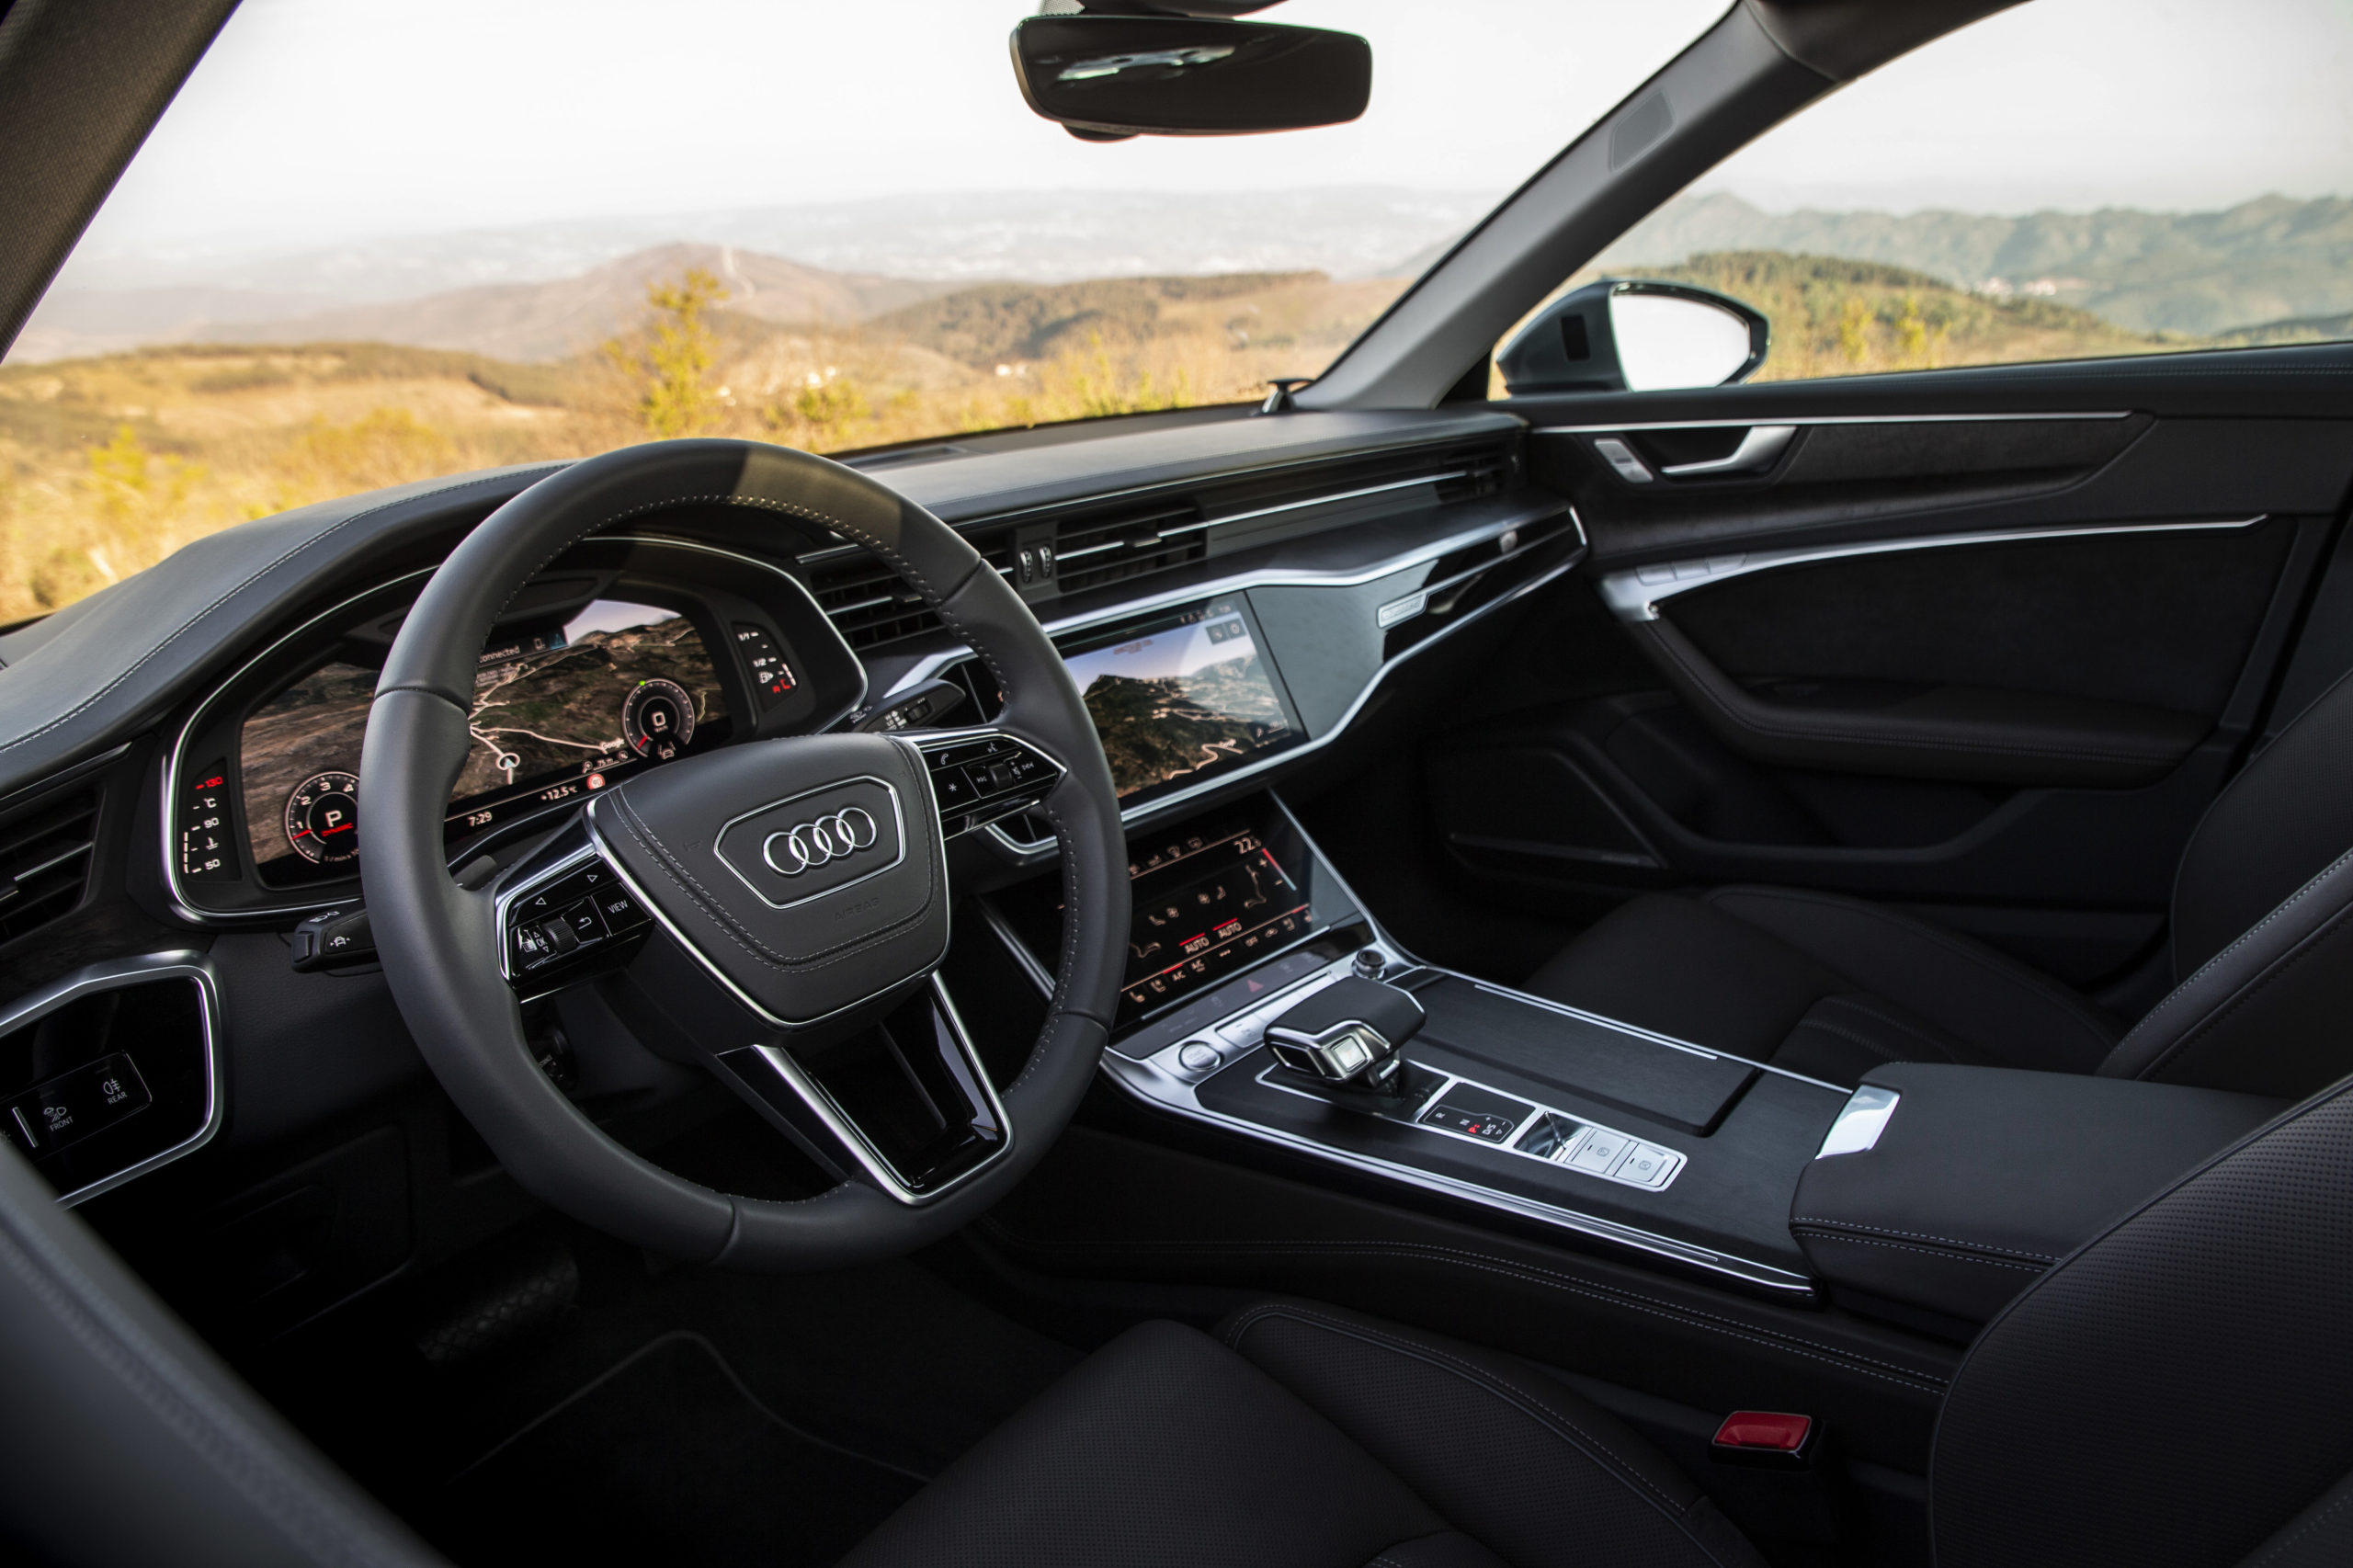 2021 Audi Tt Convertible For Sale Release Date Electric Interior Rumor Release Specs Change